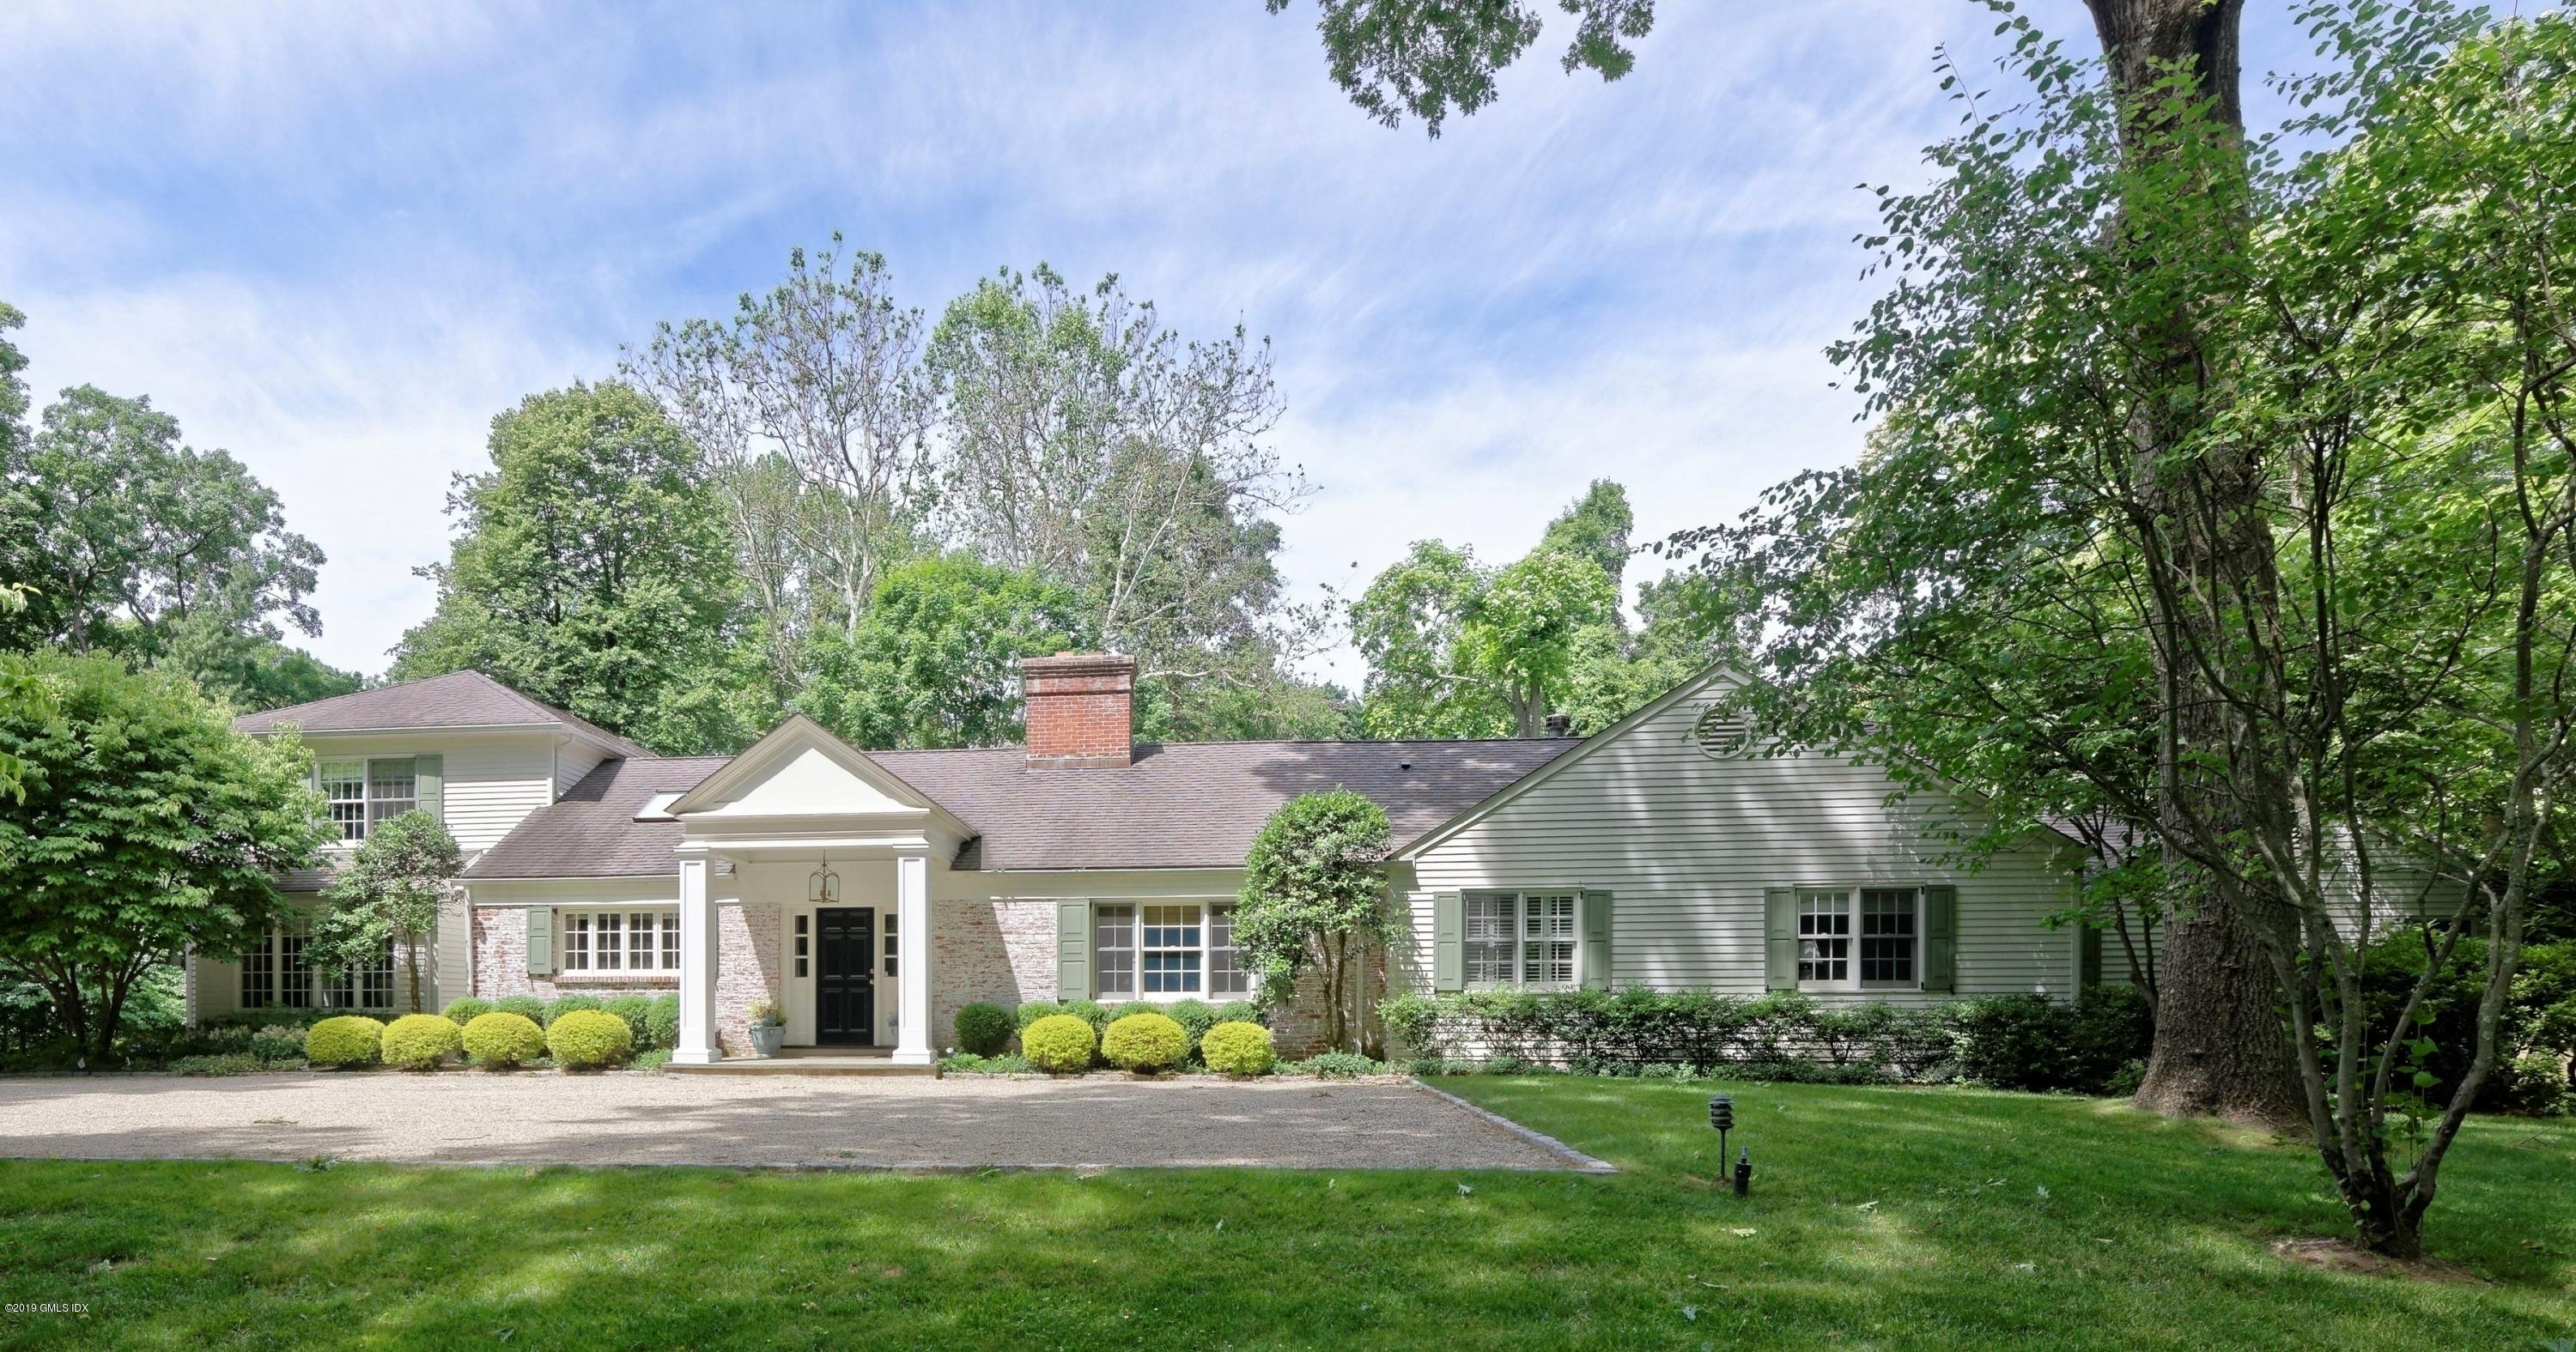 44 Husted Lane, Greenwich, CT 06830